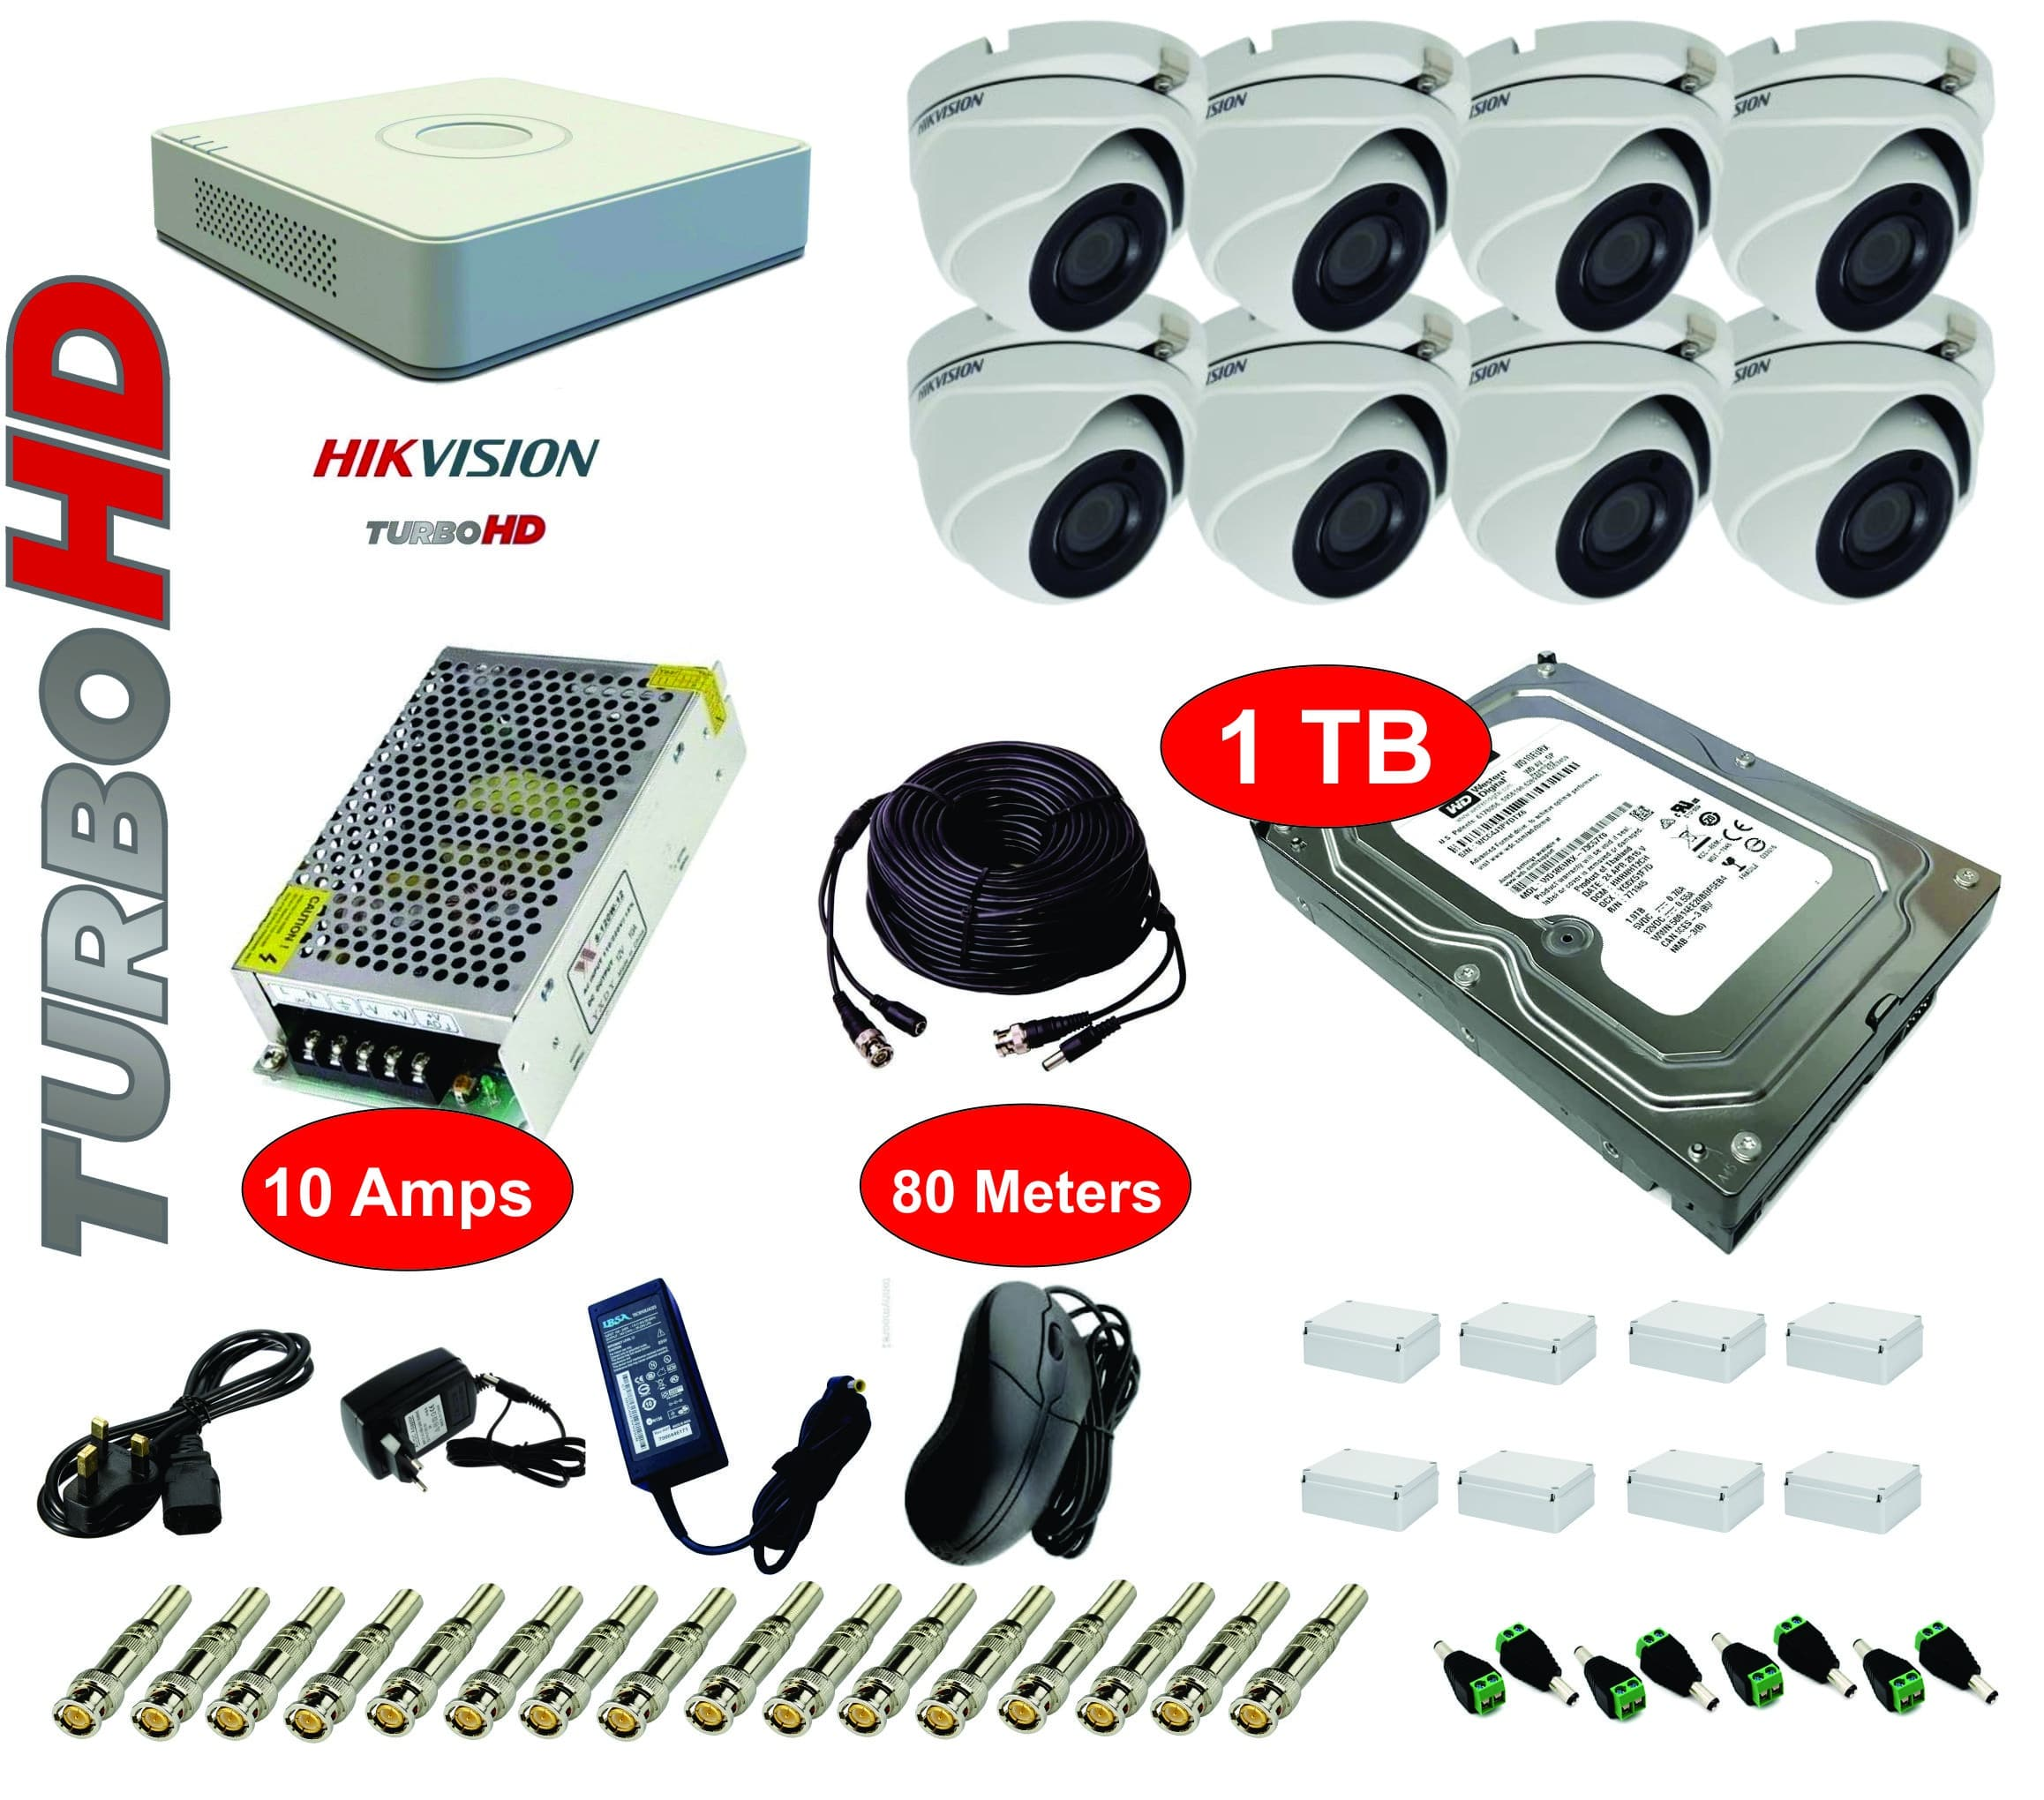 CCTV camera installation kit